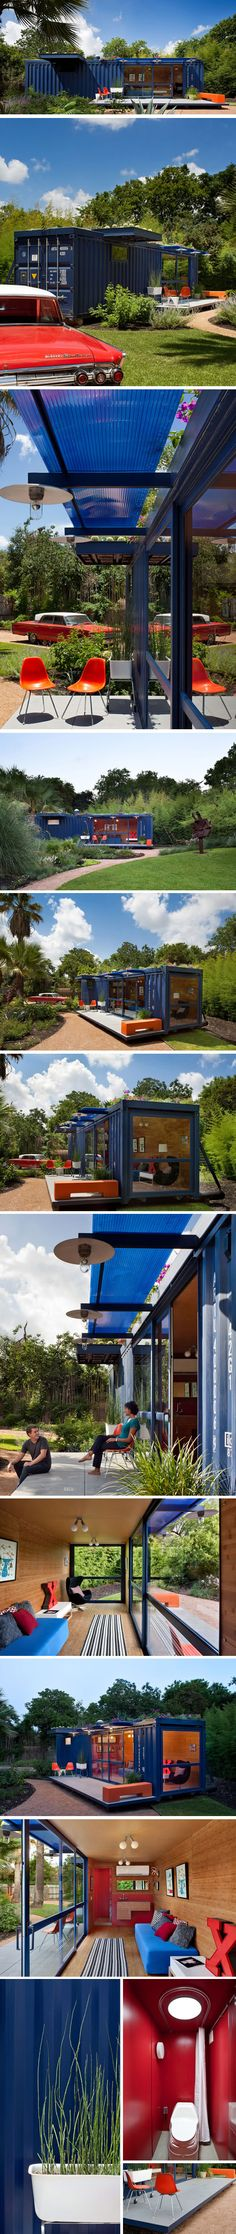 A house or studio built from a shipping container - only possible in a place where you don't need insulation? I like the challenge of living in a space that small.